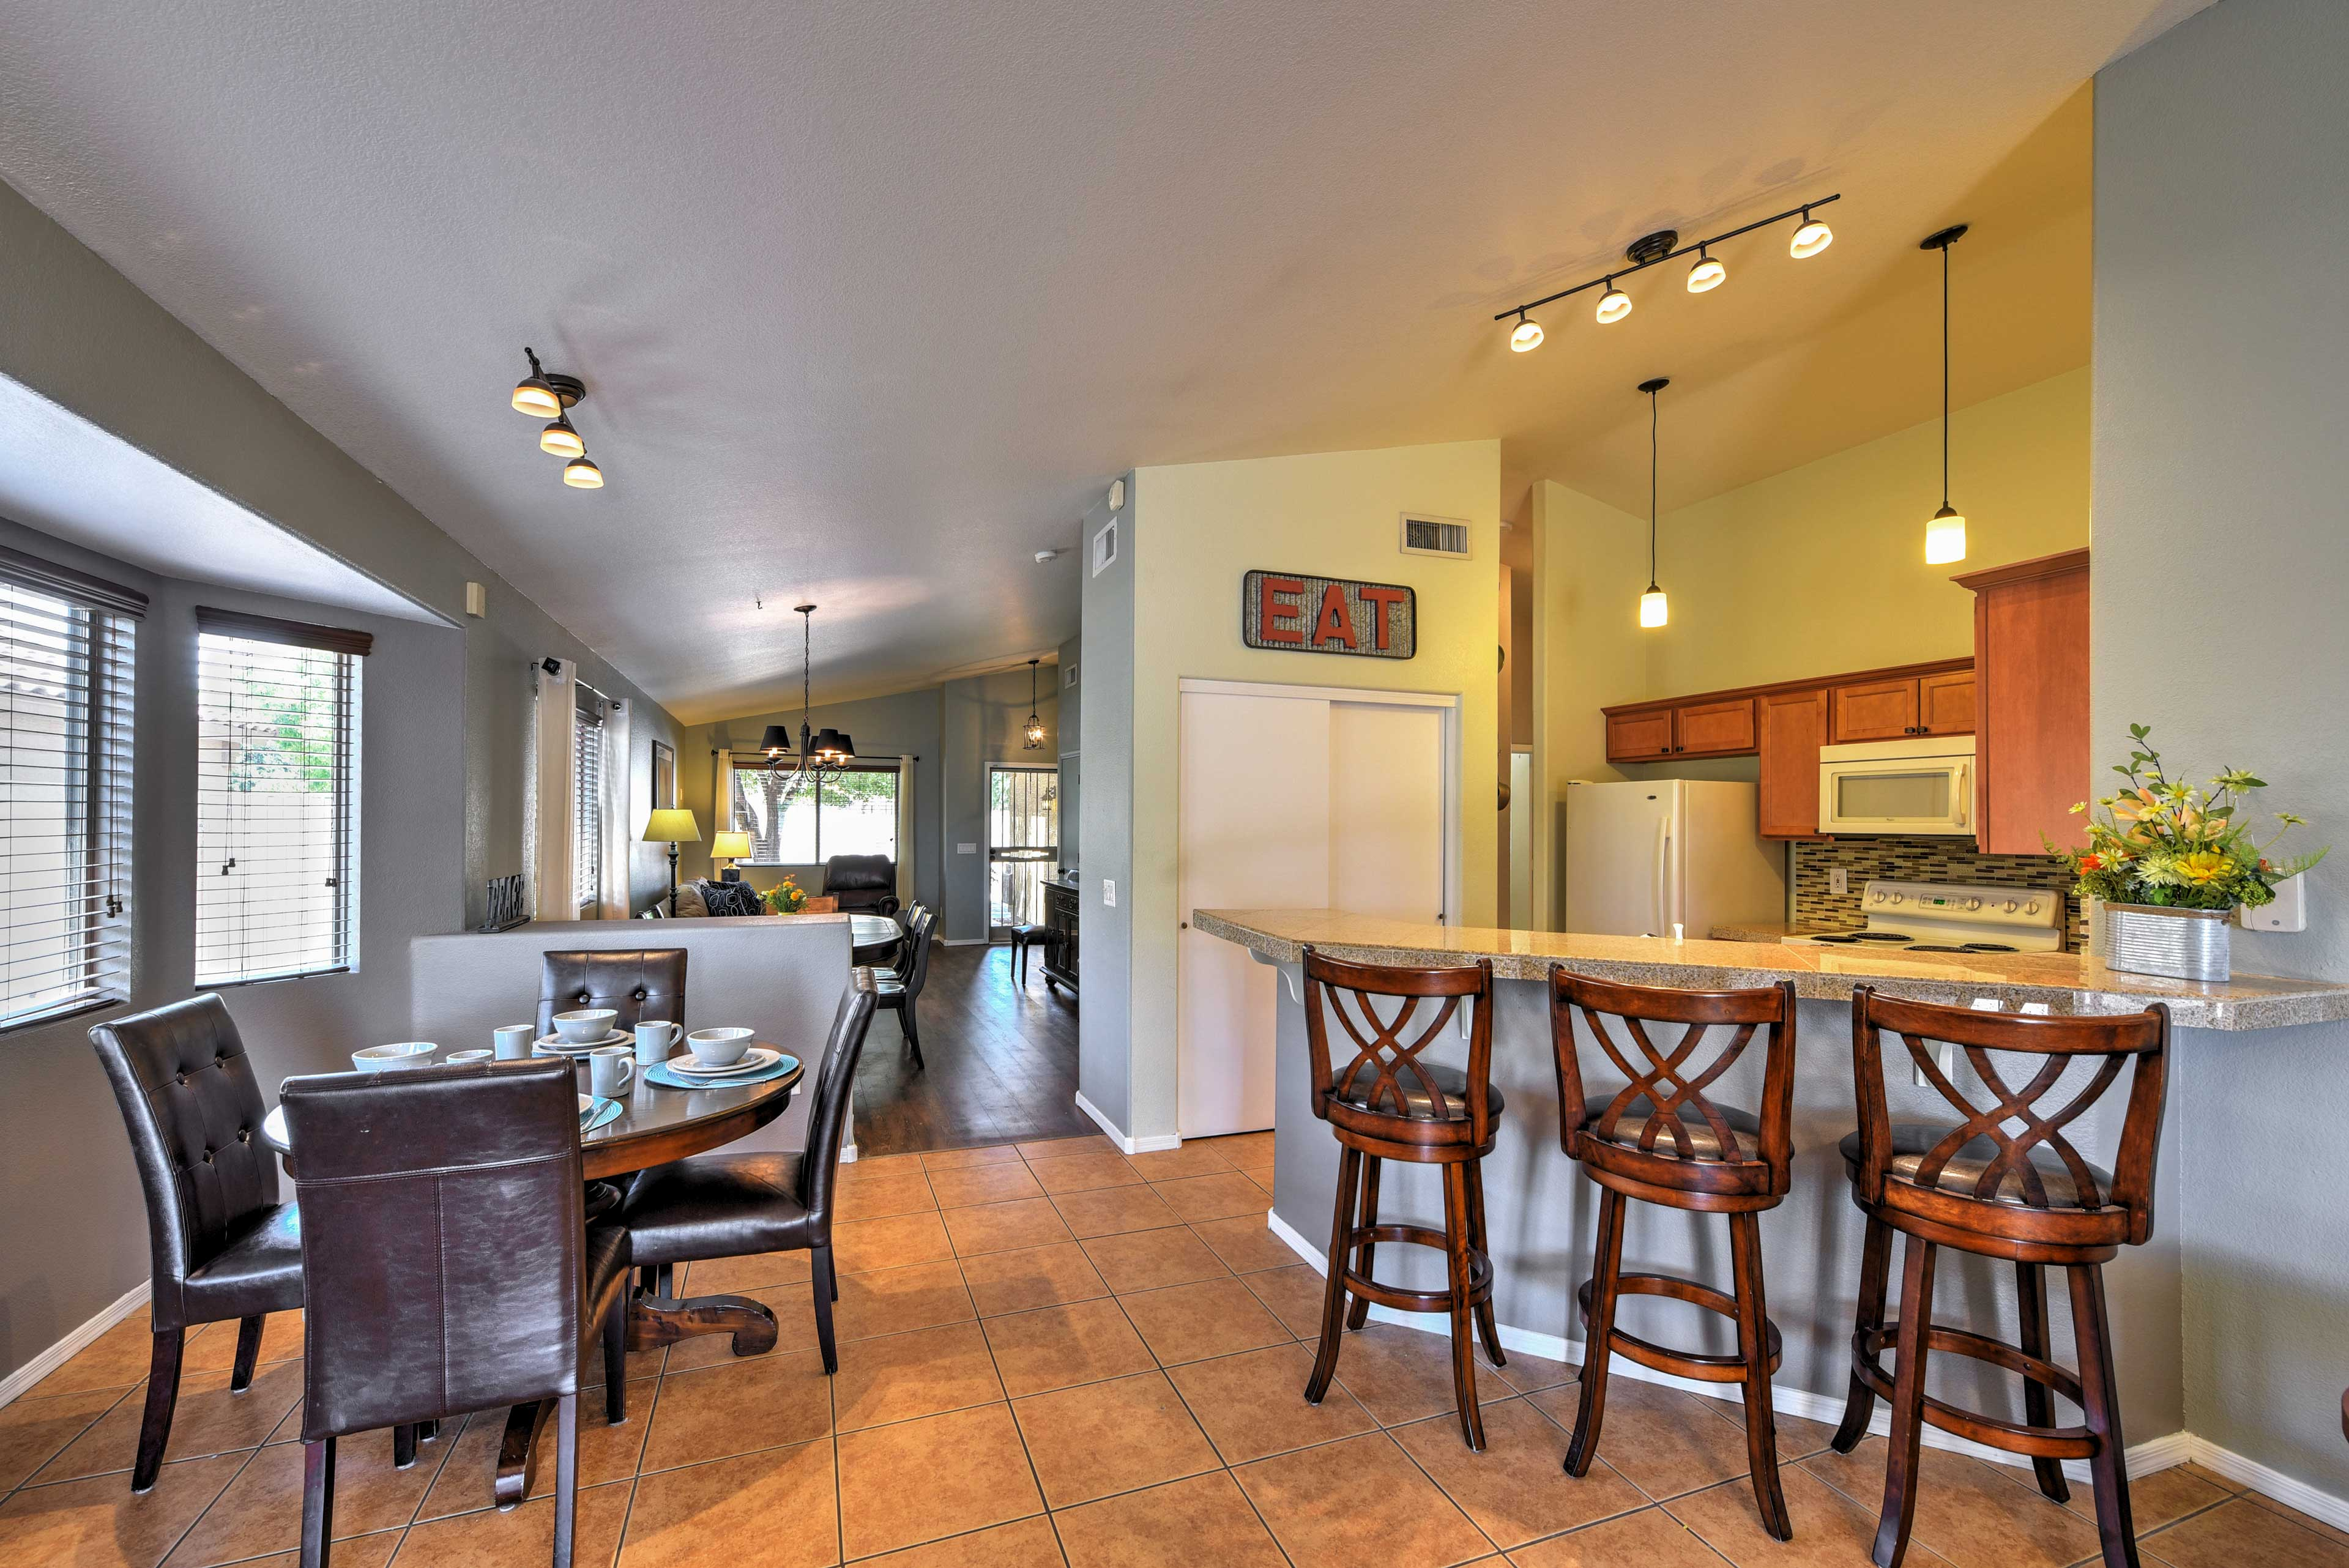 Another dining table can be found in the kitchen, along with a breakfast bar.